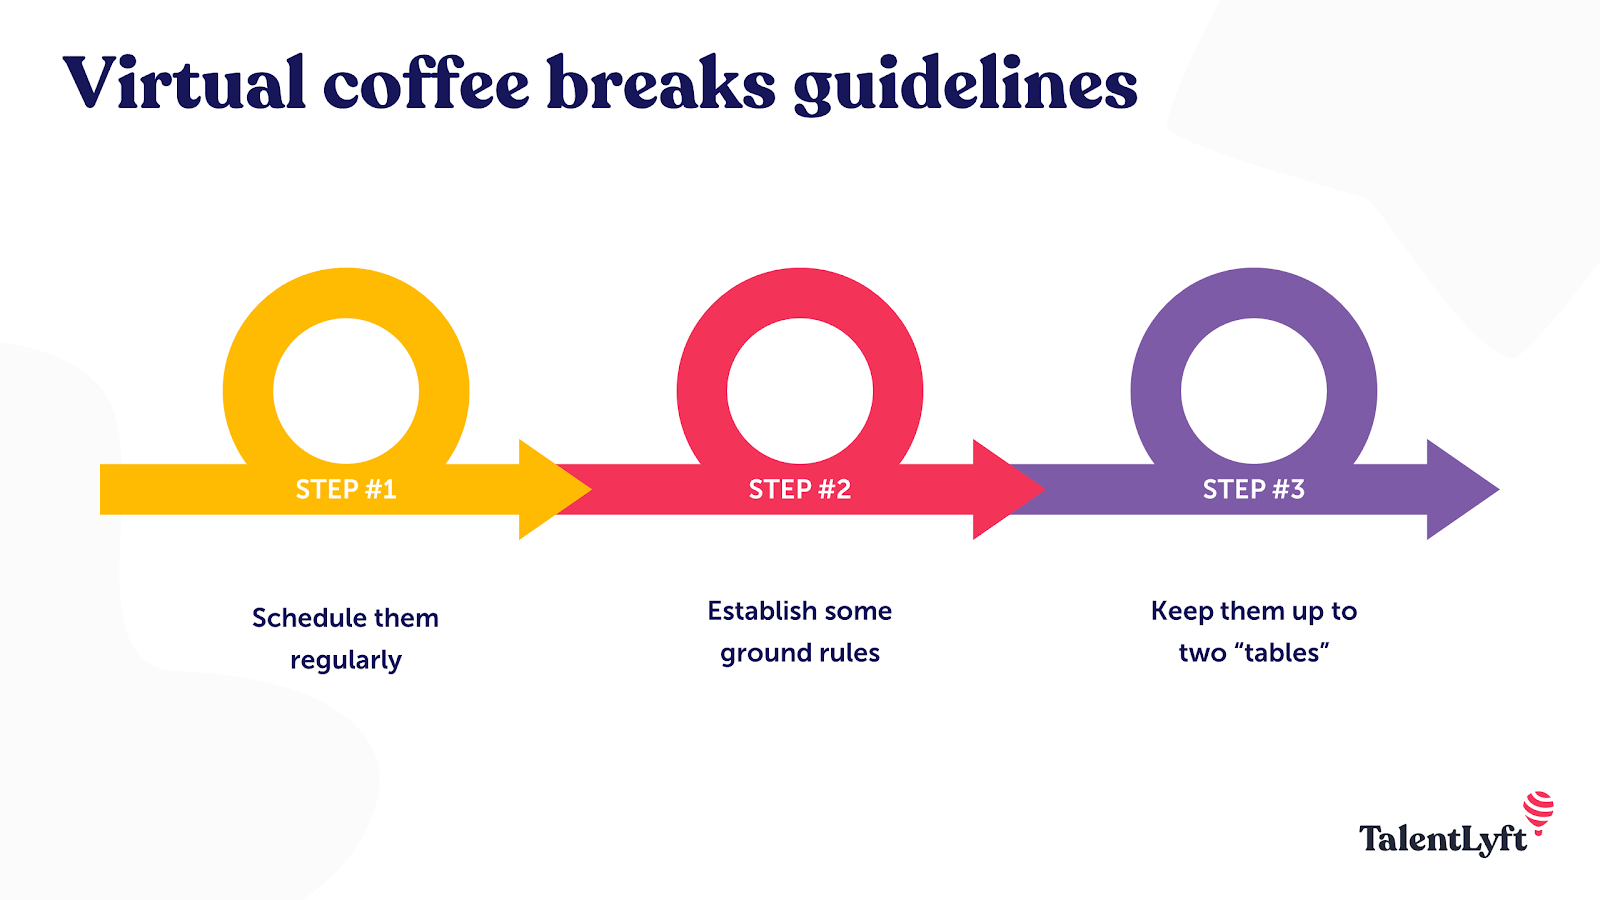 Virtual coffee break guidelines